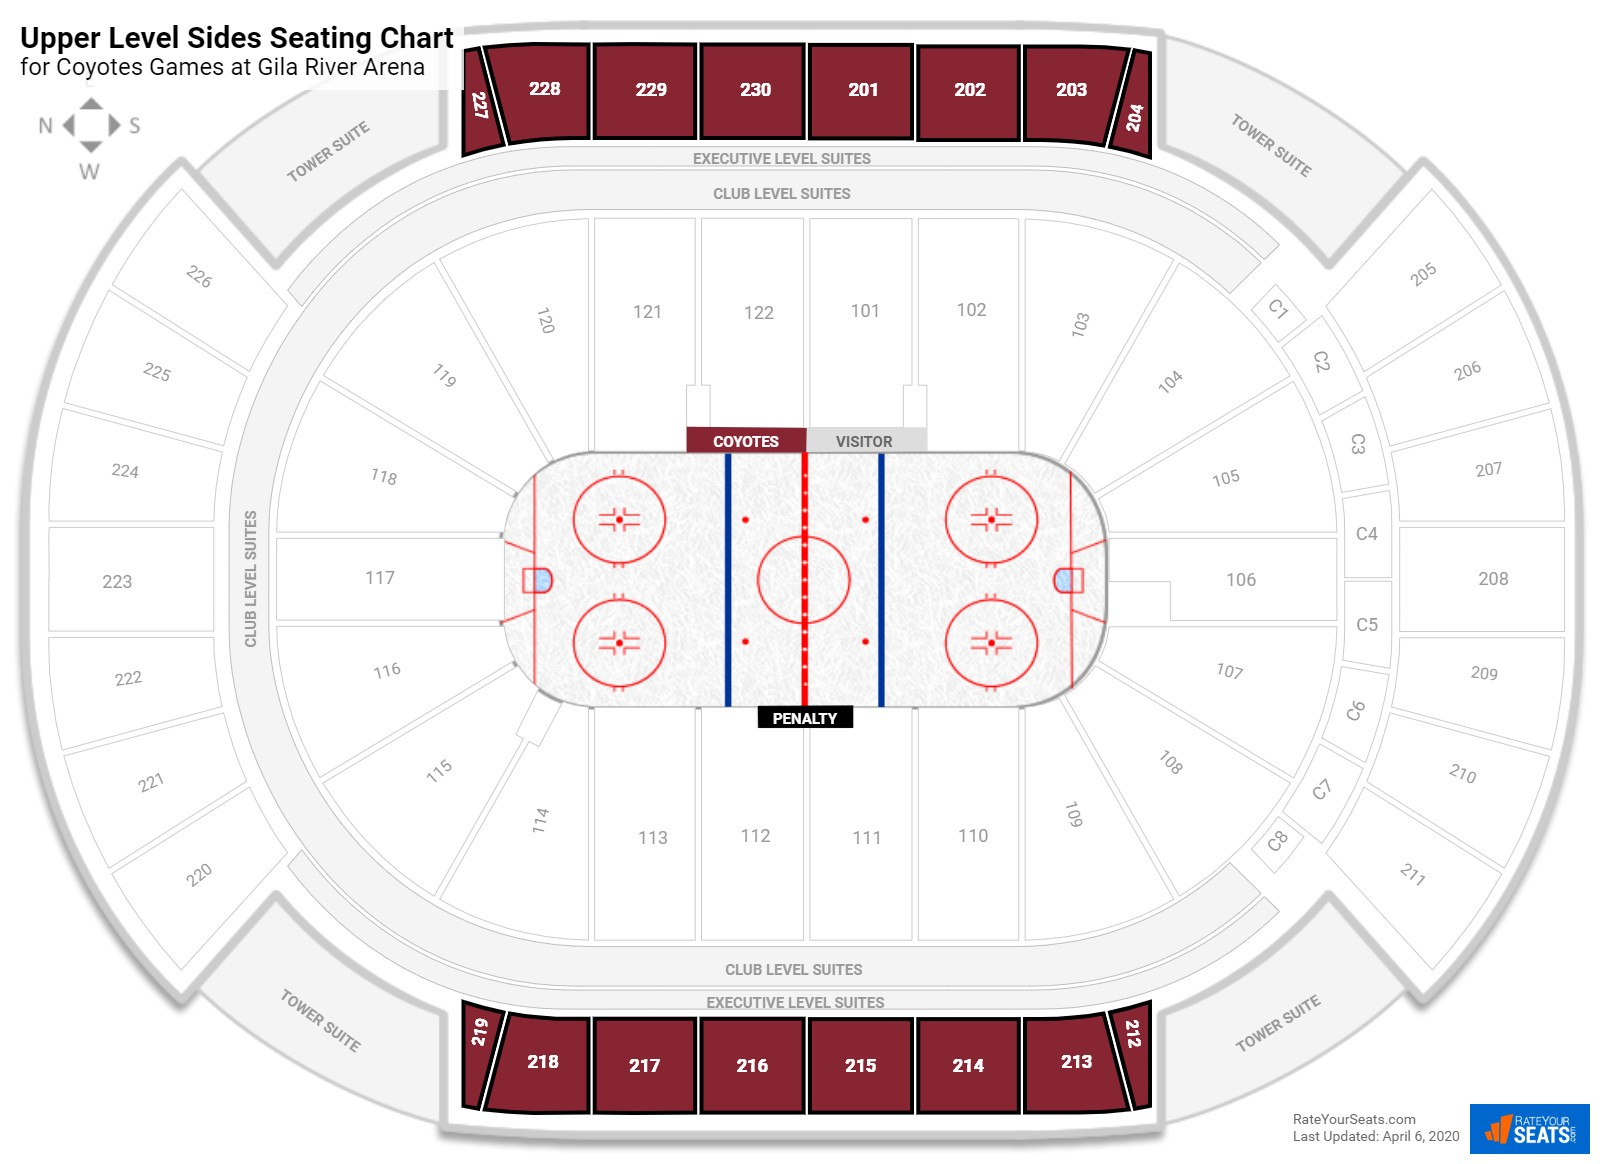 Gila River Arena Upper Level Side seating chart